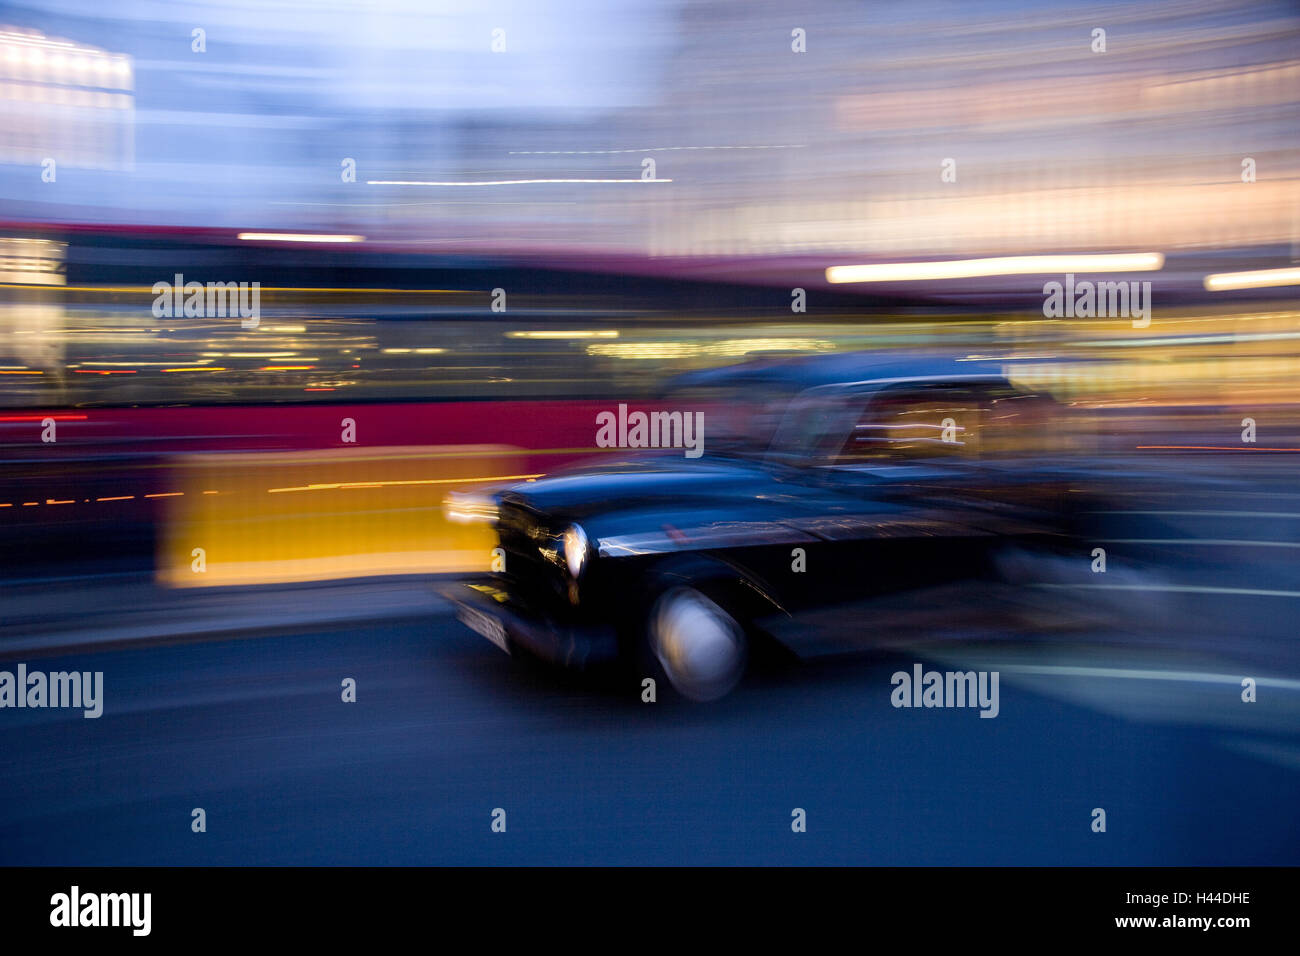 Taxi, Picadilly Circus, blur, London, England, Great Britain, - Stock Image